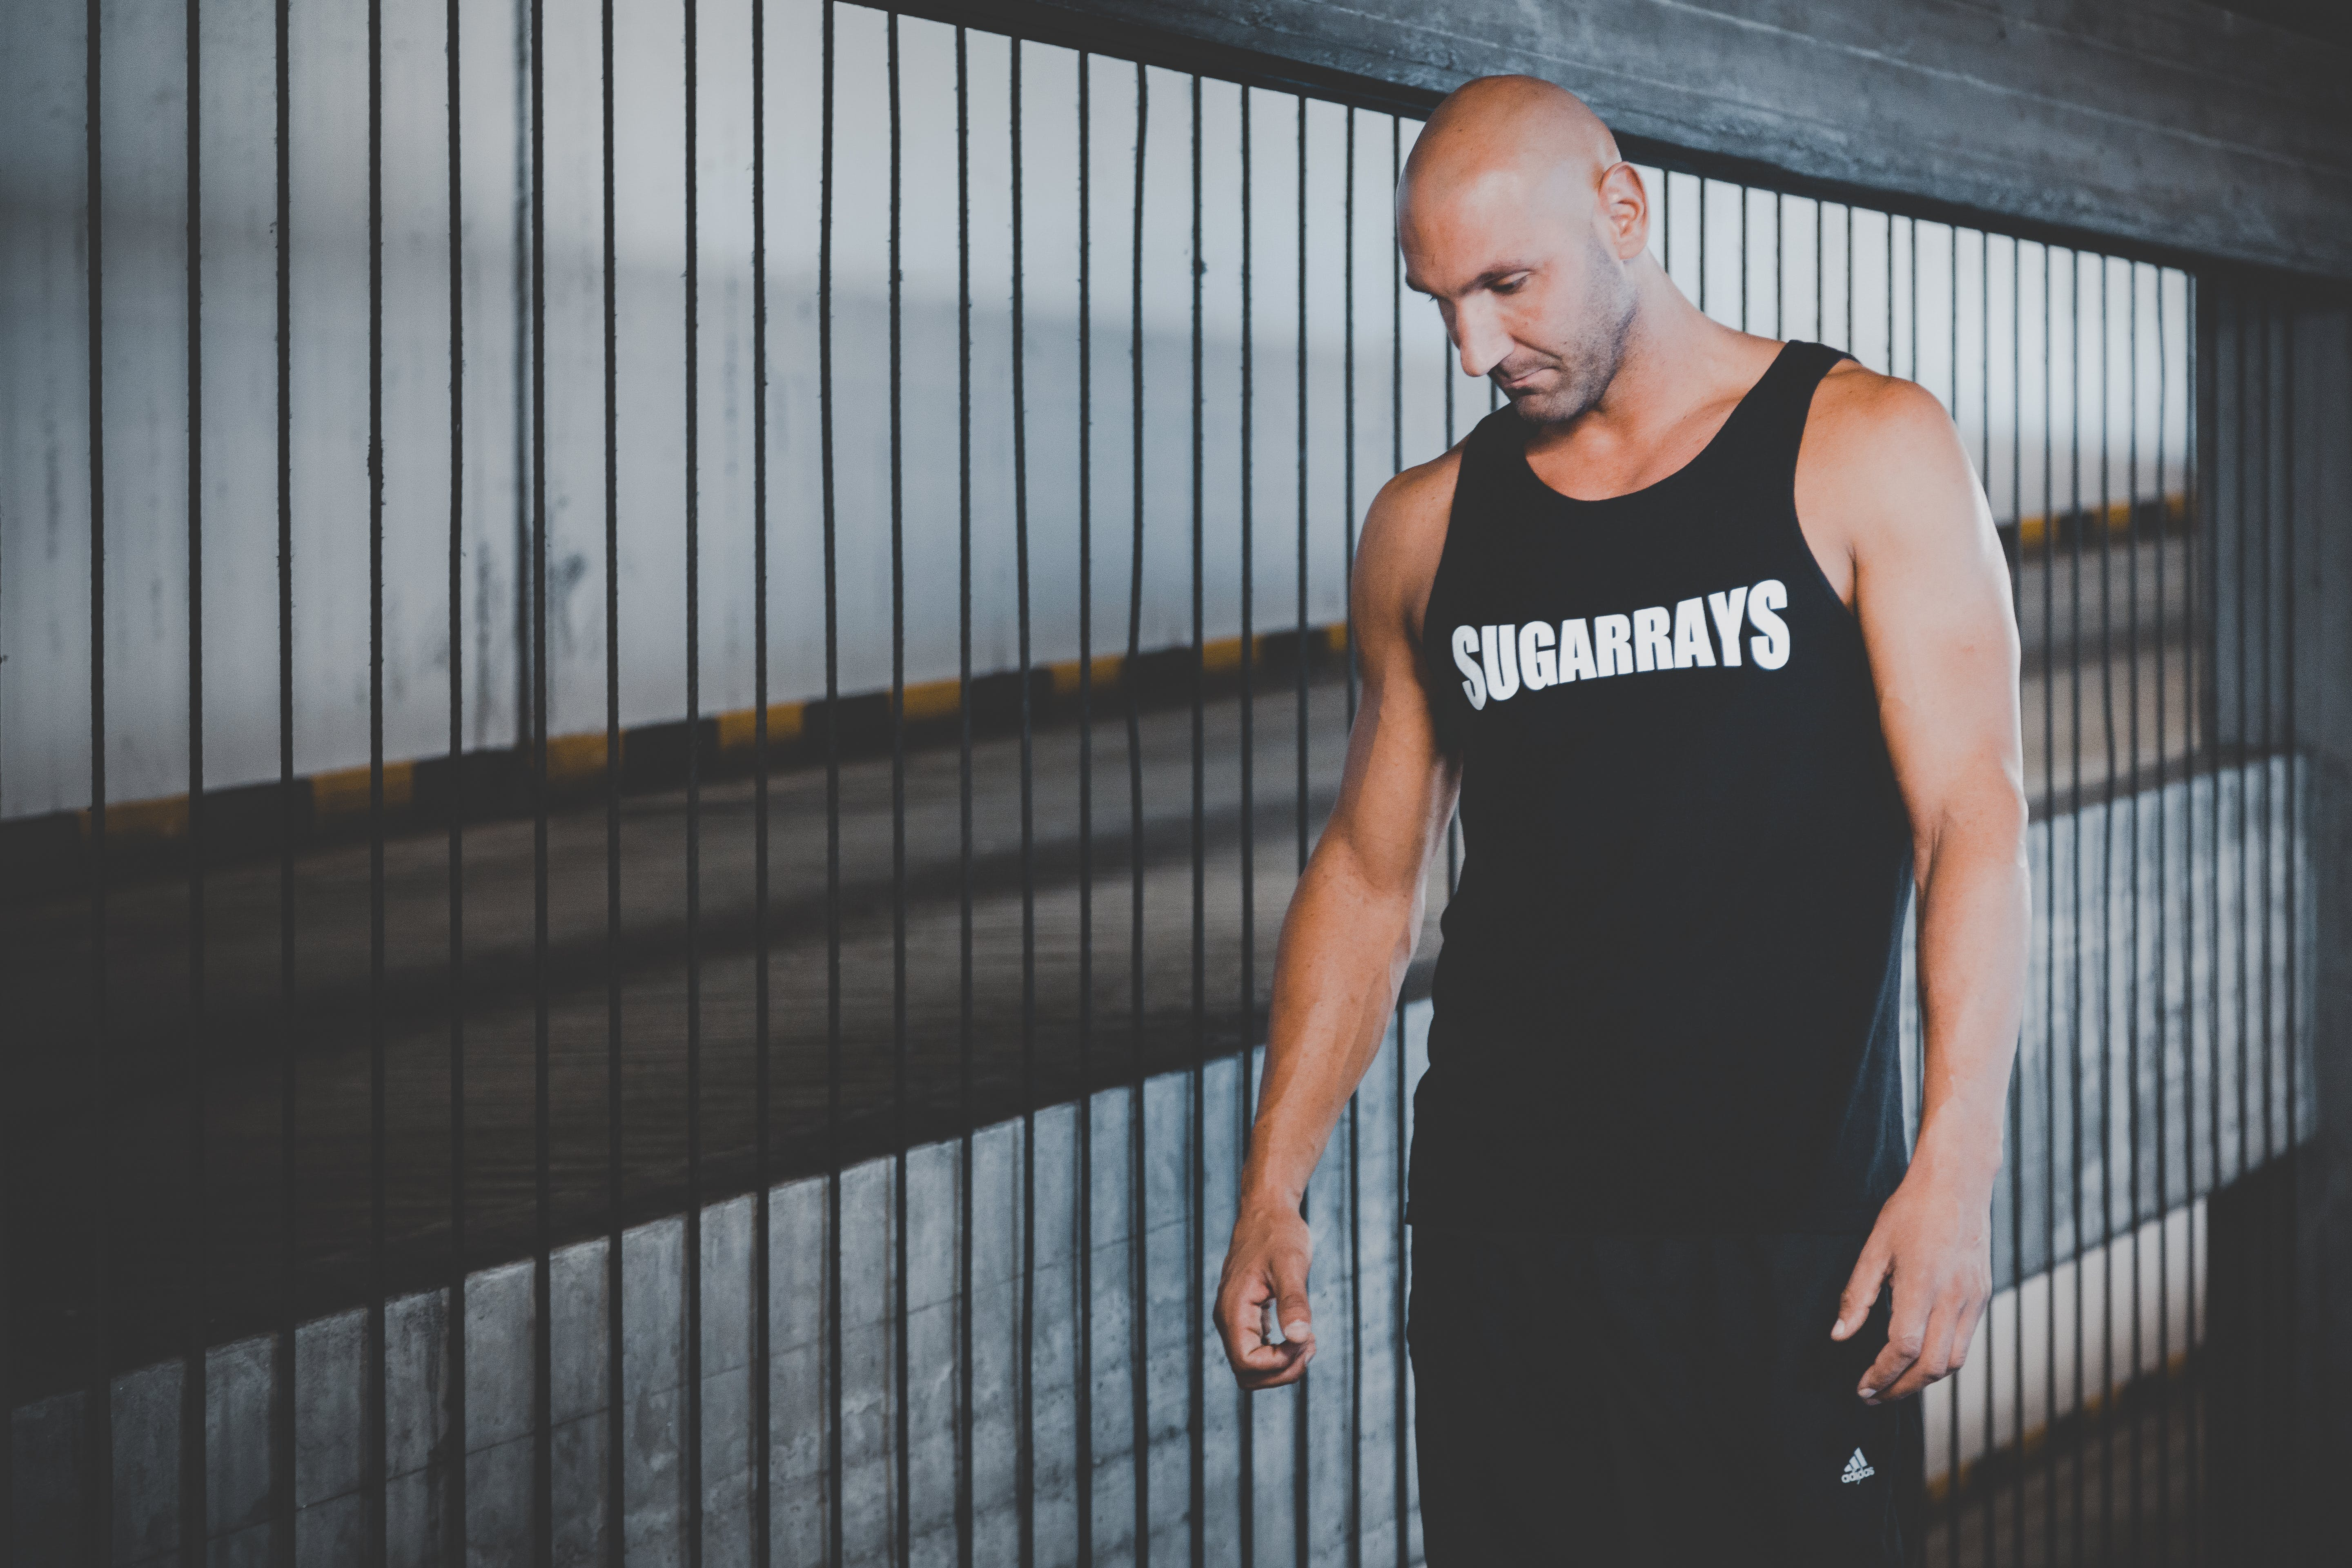 Man Wearing Black Tank Top Standing Near Black Metal Railings